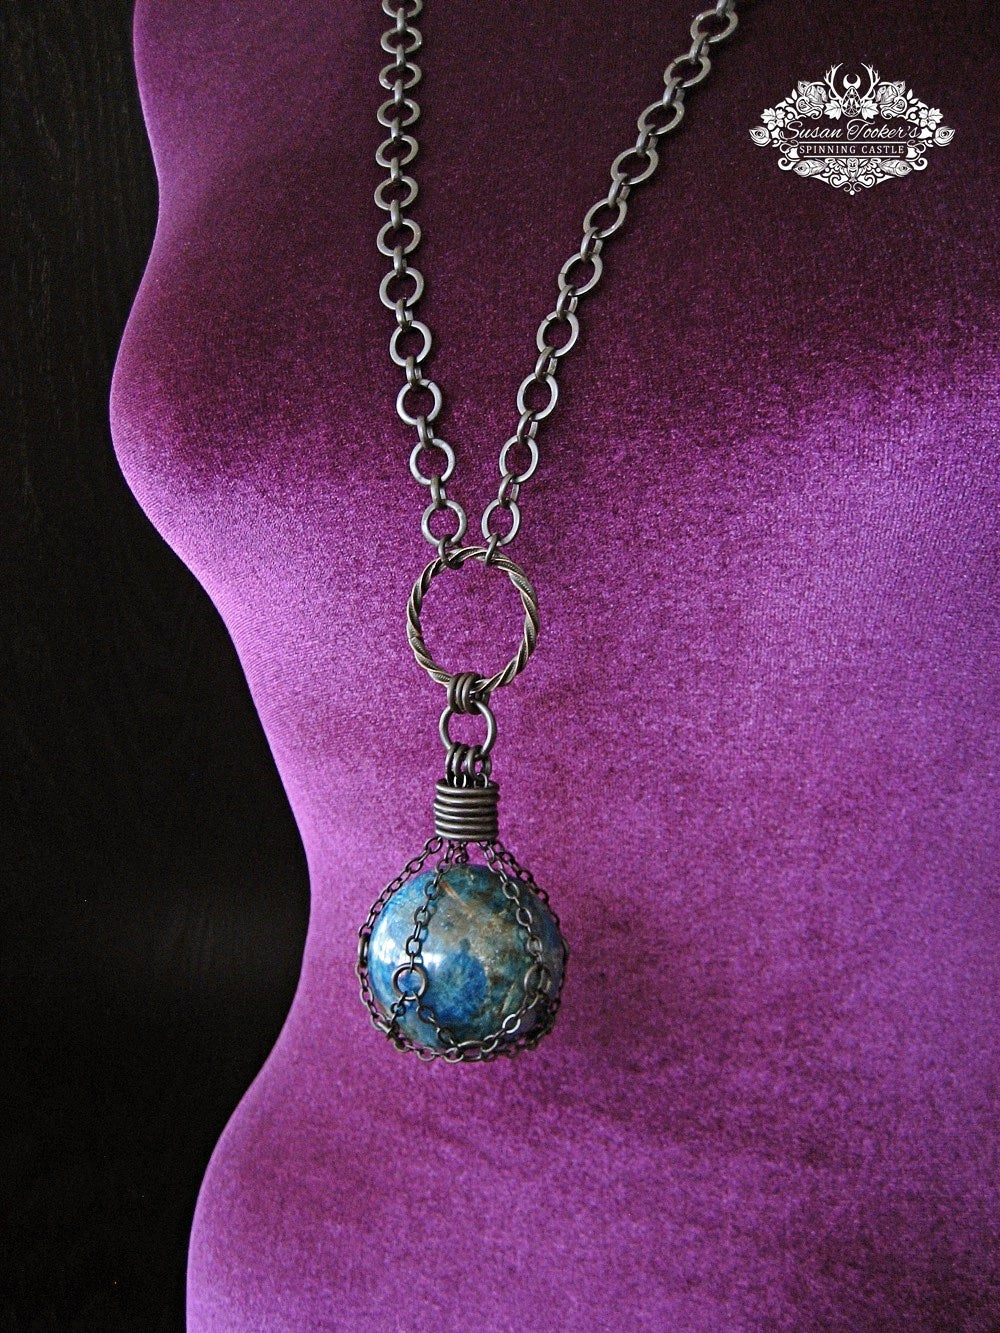 Image of THE GAIA STONE - Blue Apatite Crystal Ball Necklace Witch Talisman Gemstone Sphere